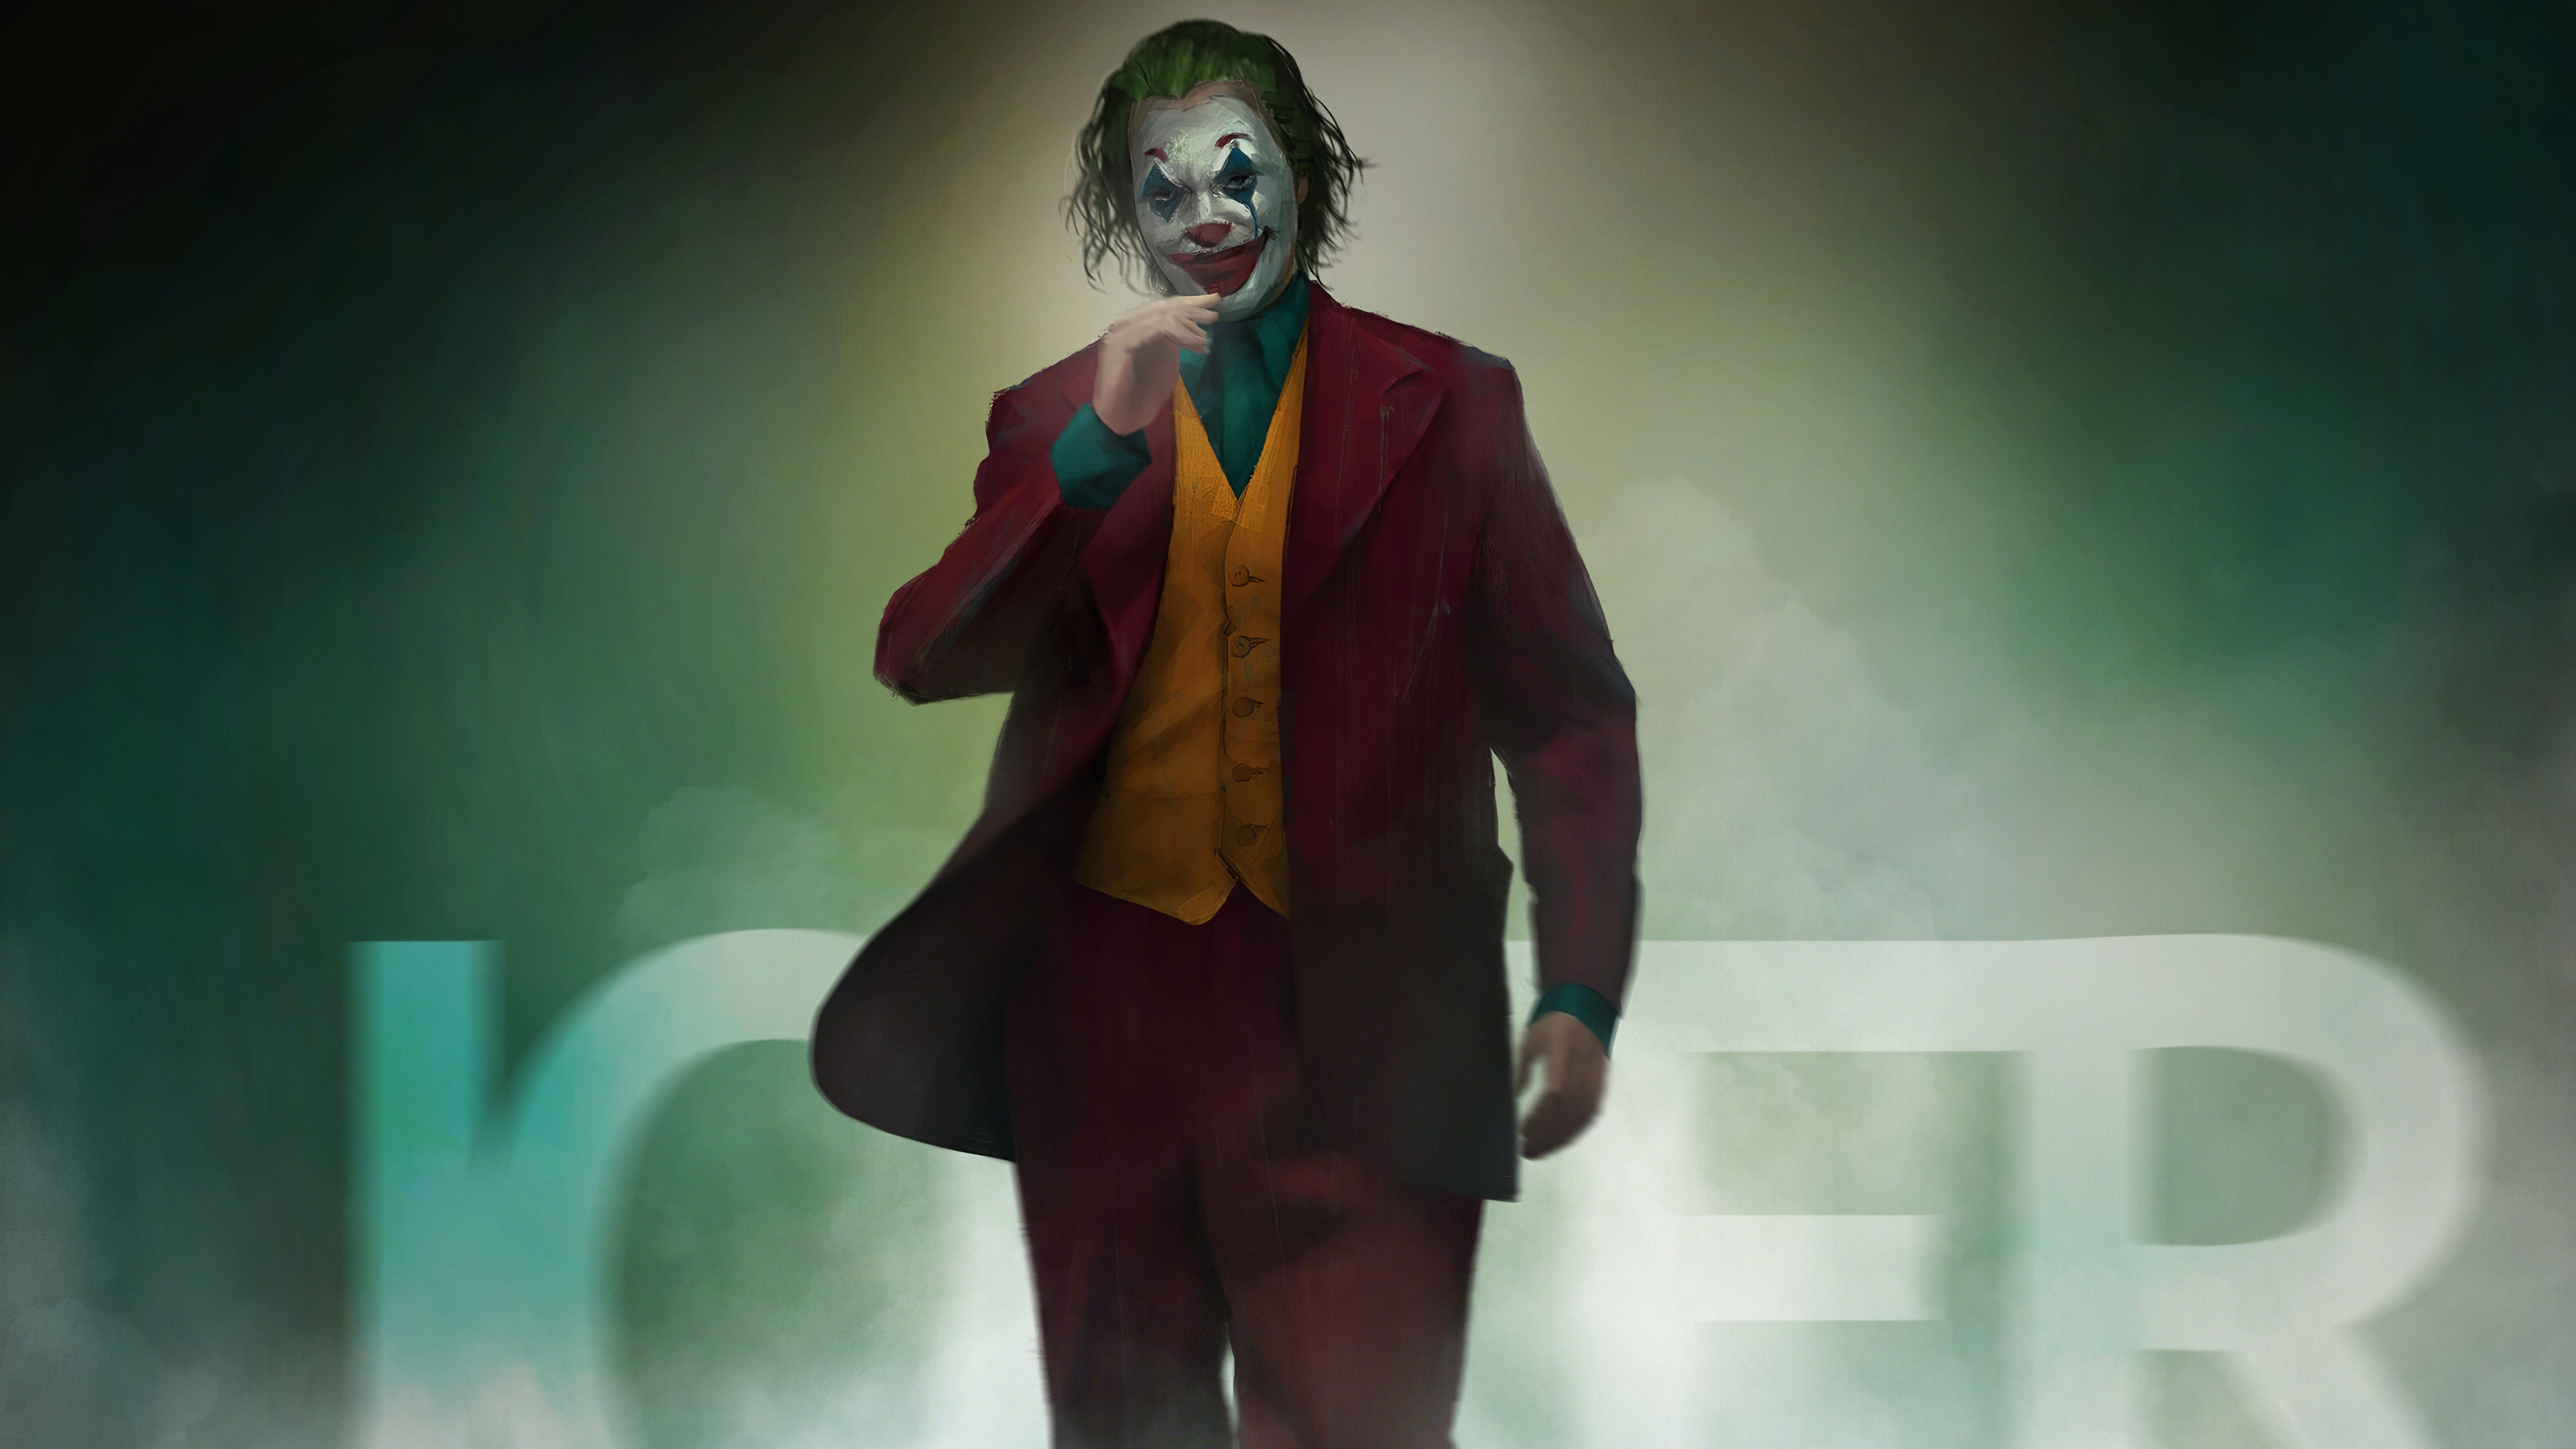 Joker Wallpaper Hd Joker Wallpaper Iphone 11 Pro Max 2558755 Hd Wallpaper Backgrounds Download